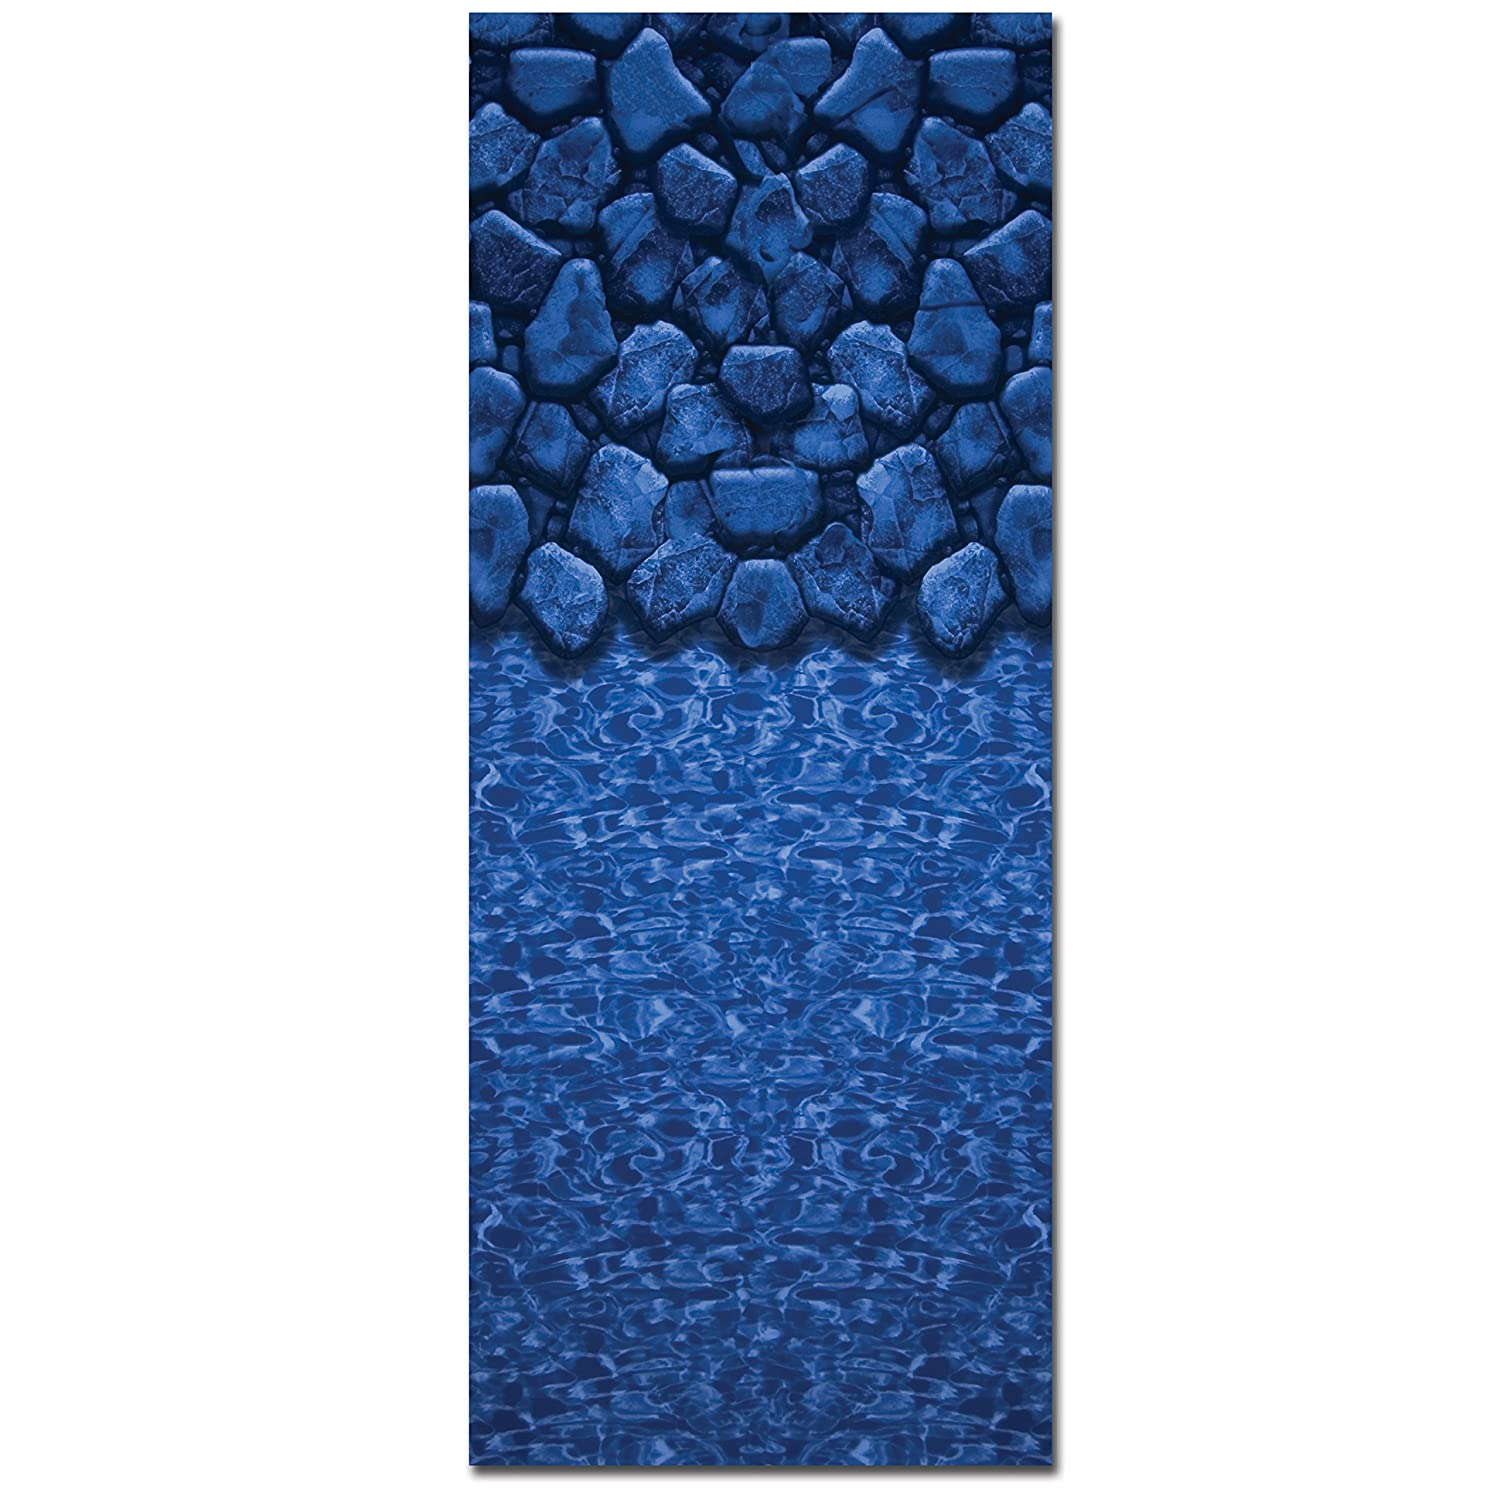 flooring pool tiles pictures also designs design padding options attractive floor swimming